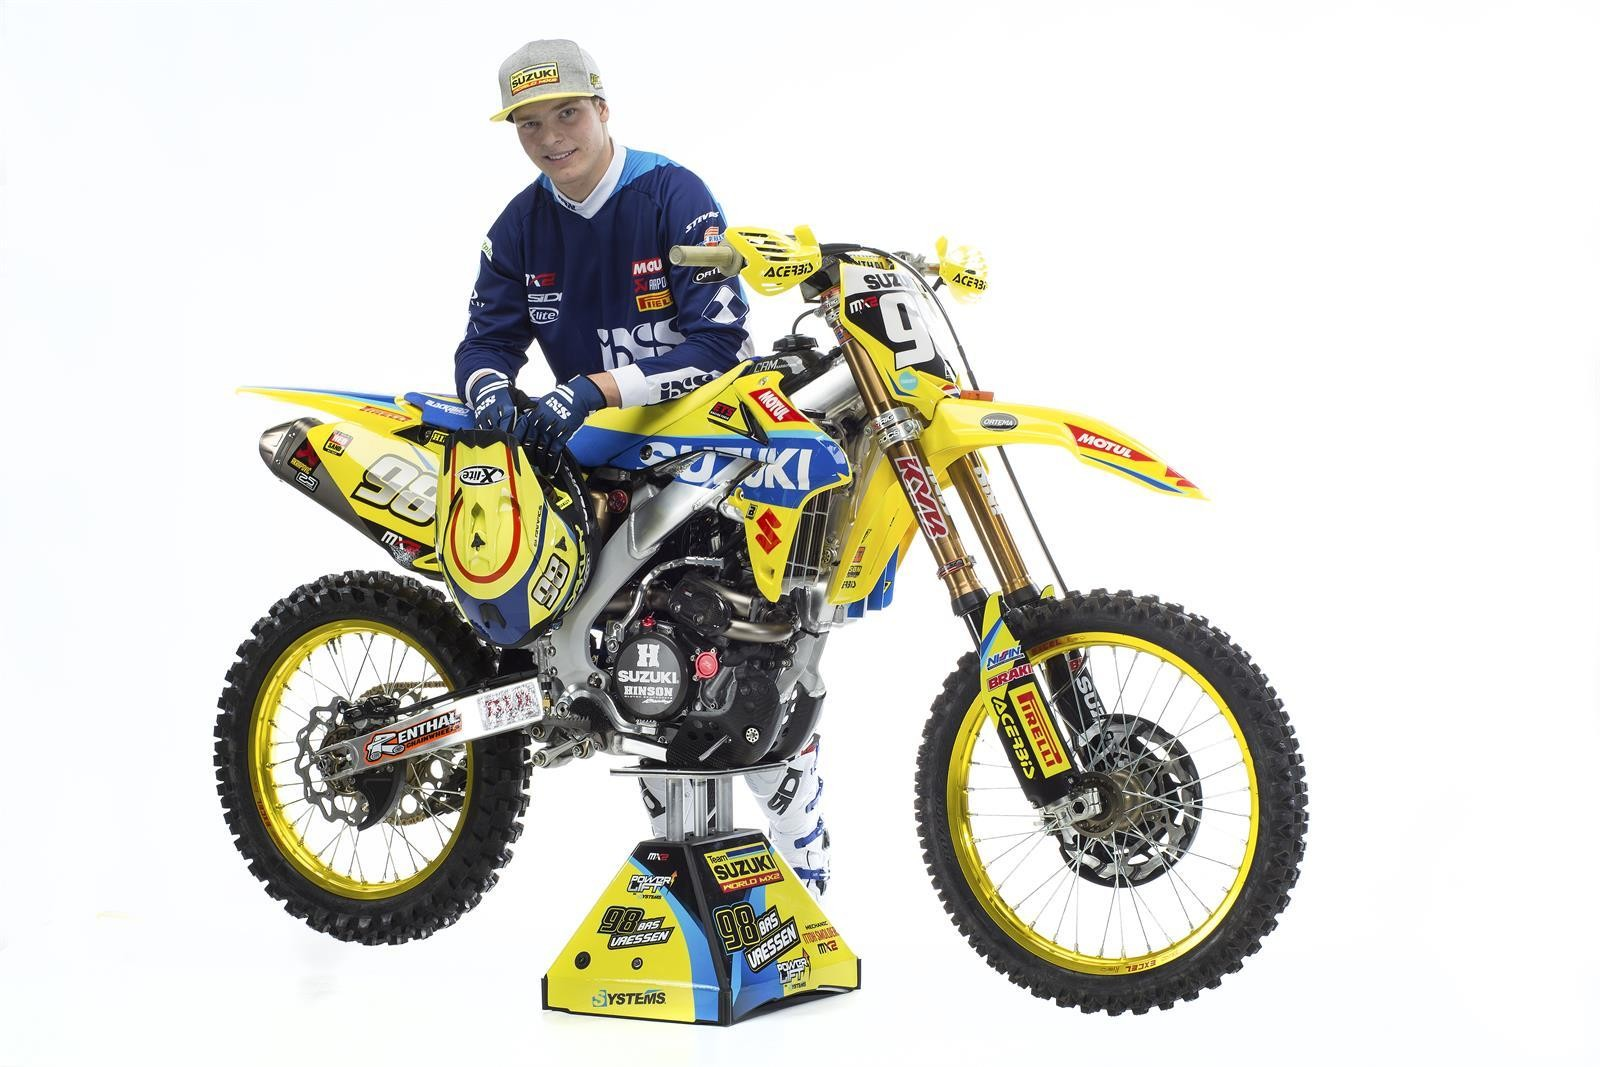 Bas Vaessen and his 2017 Suzuki World MX2 RM-Z250 - First Look: 2017 Suzuki World MX2 Team - Motocross Pictures - Vital MX